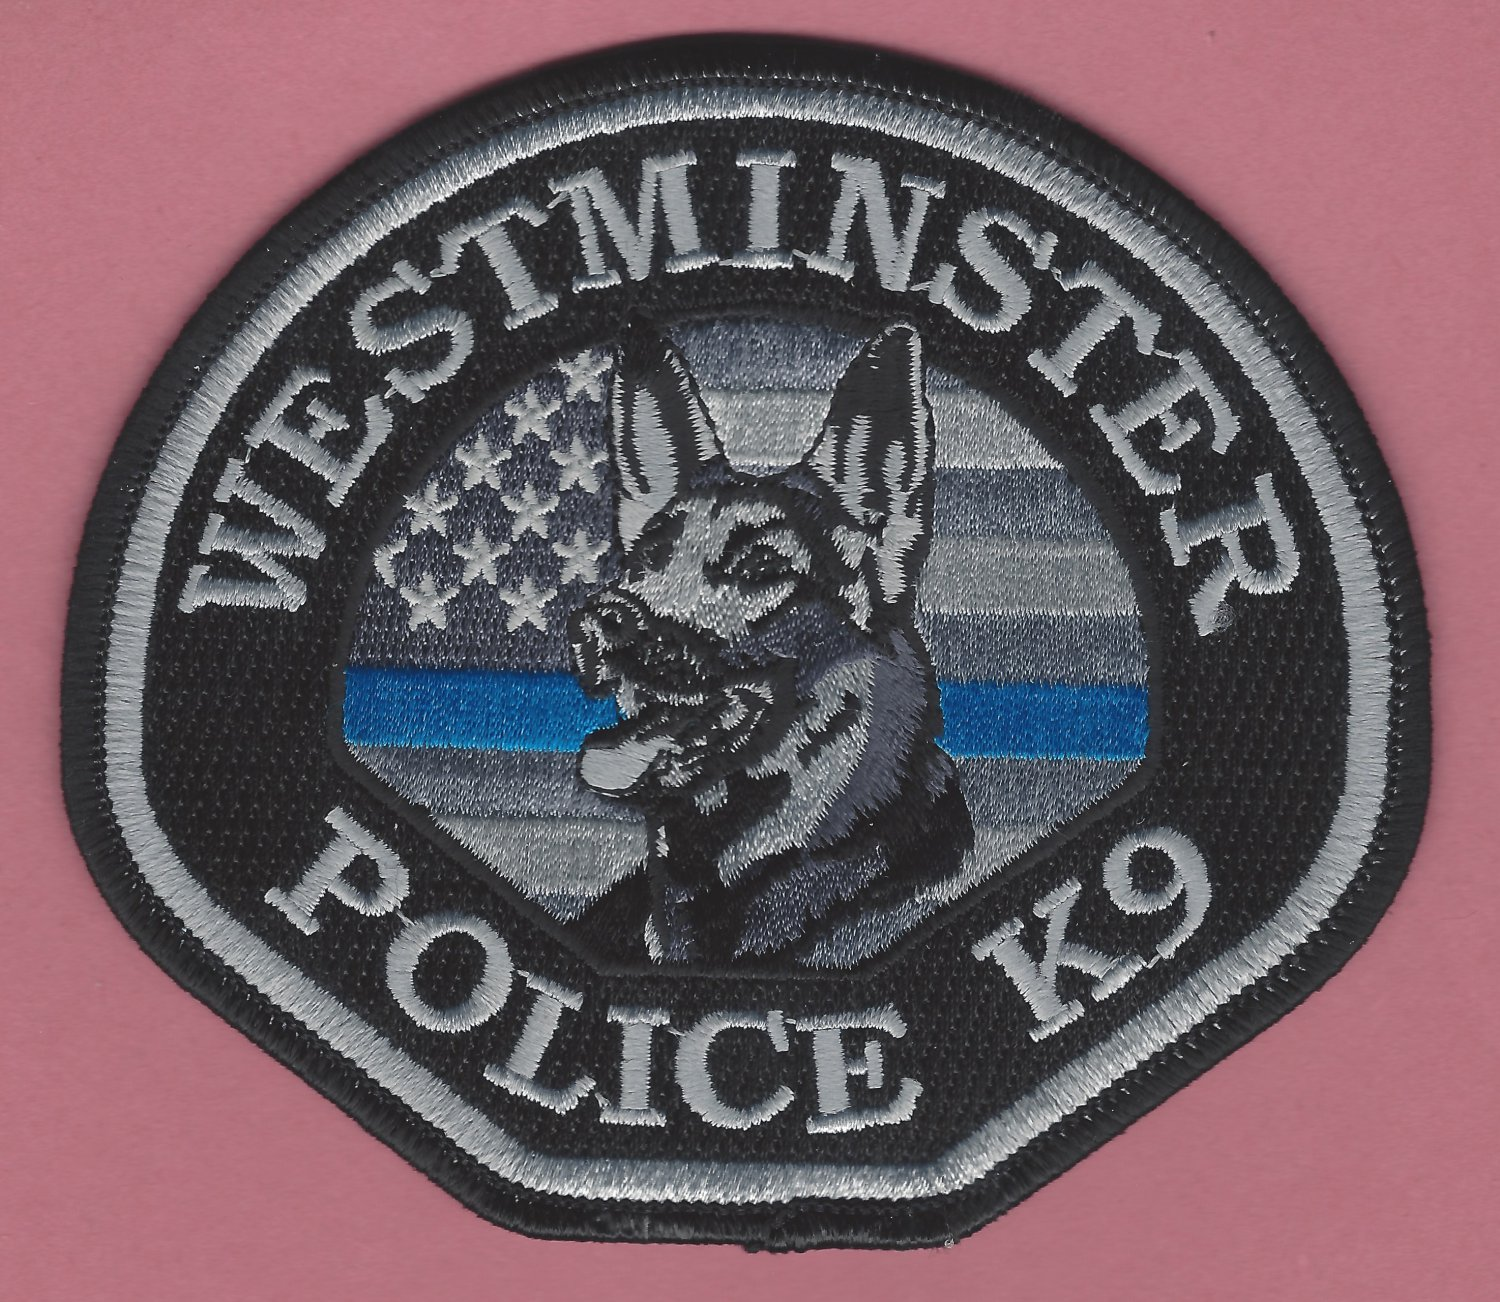 Westminster California Police K-9 Unit Patch